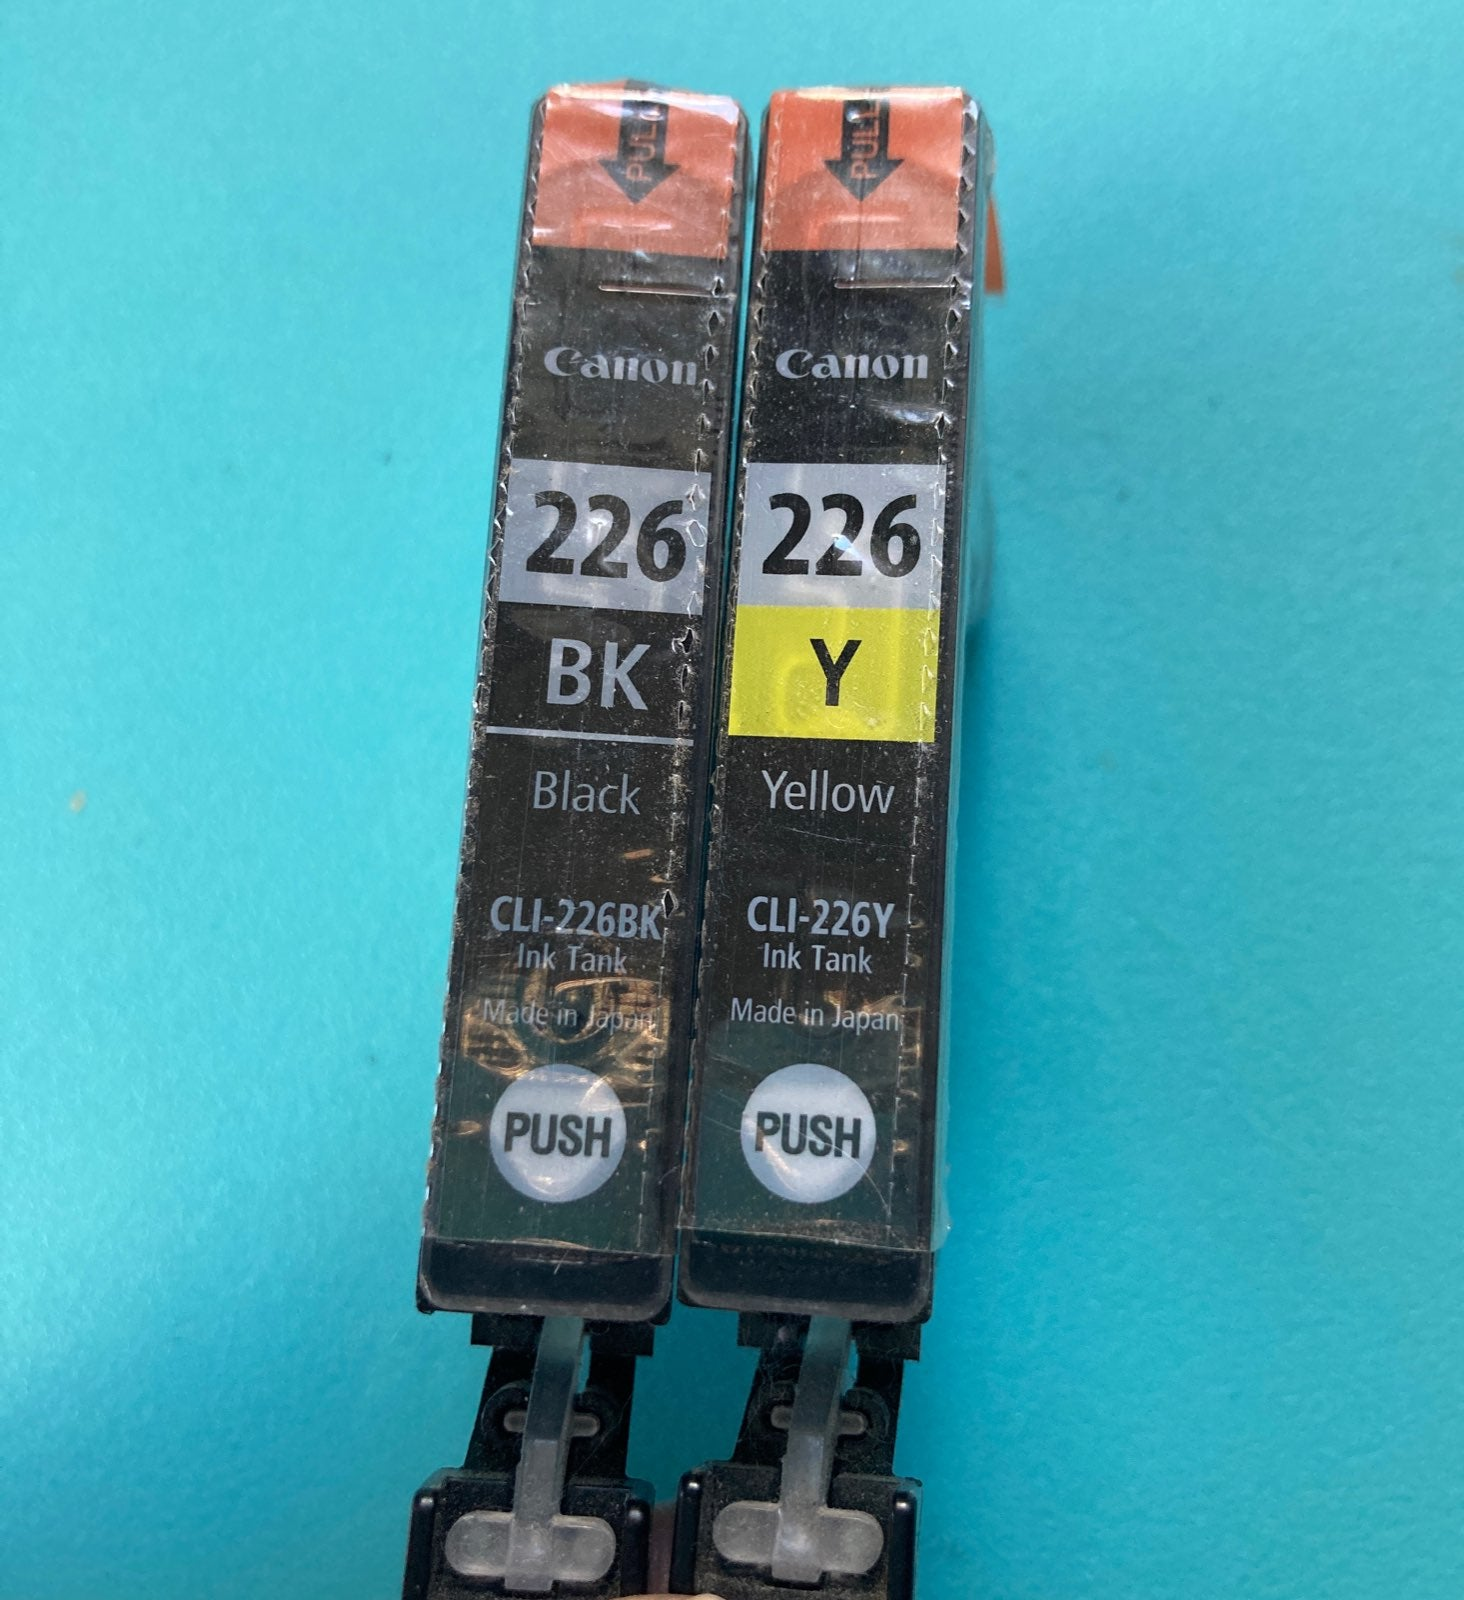 New Canon 226 BK & Y Ink Cartridges